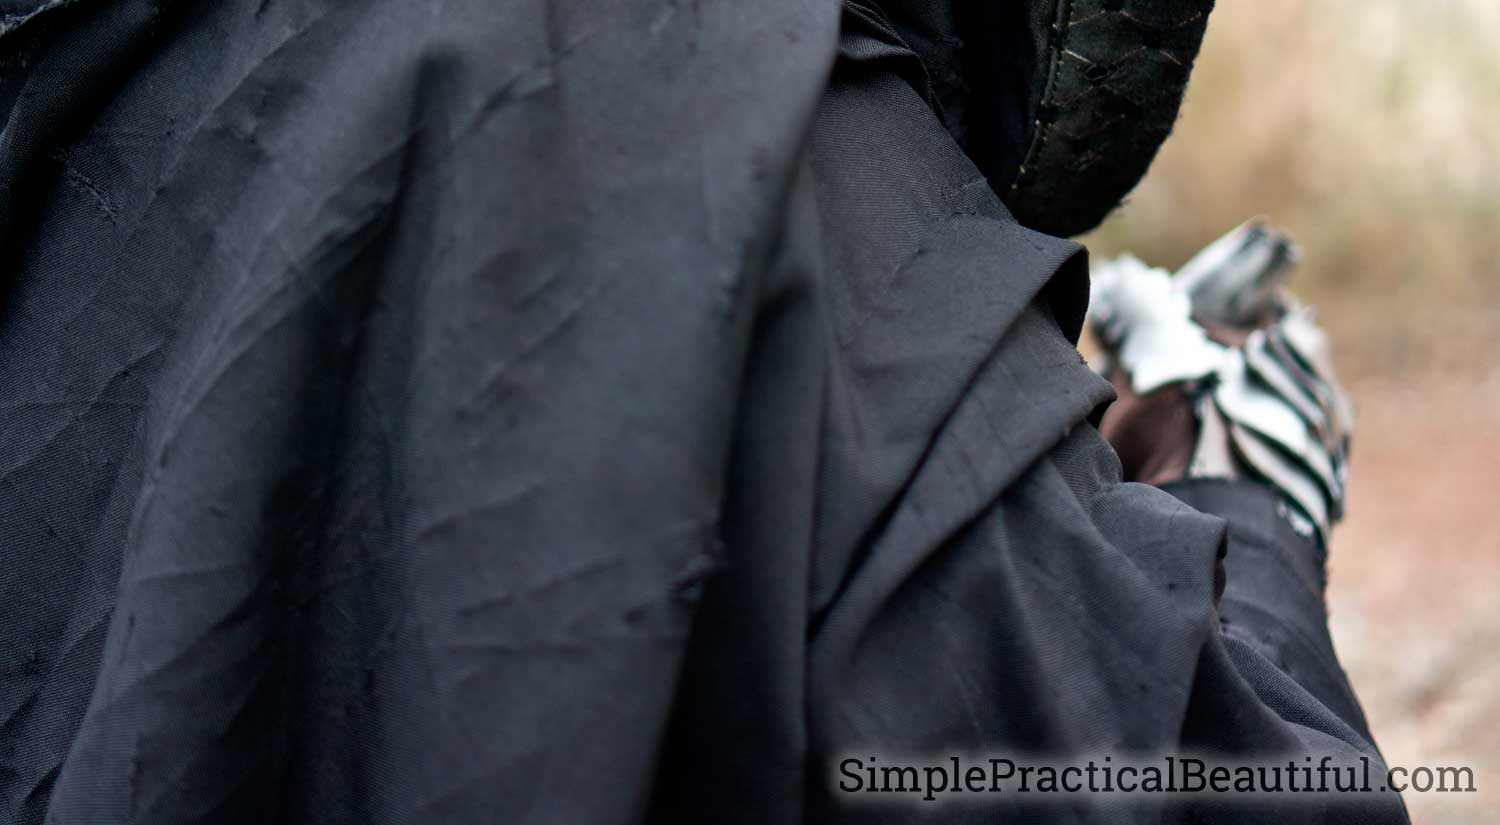 Make folds in the Nazgul cloak to create the flow of a Lord of the Rings Ringwraith costume